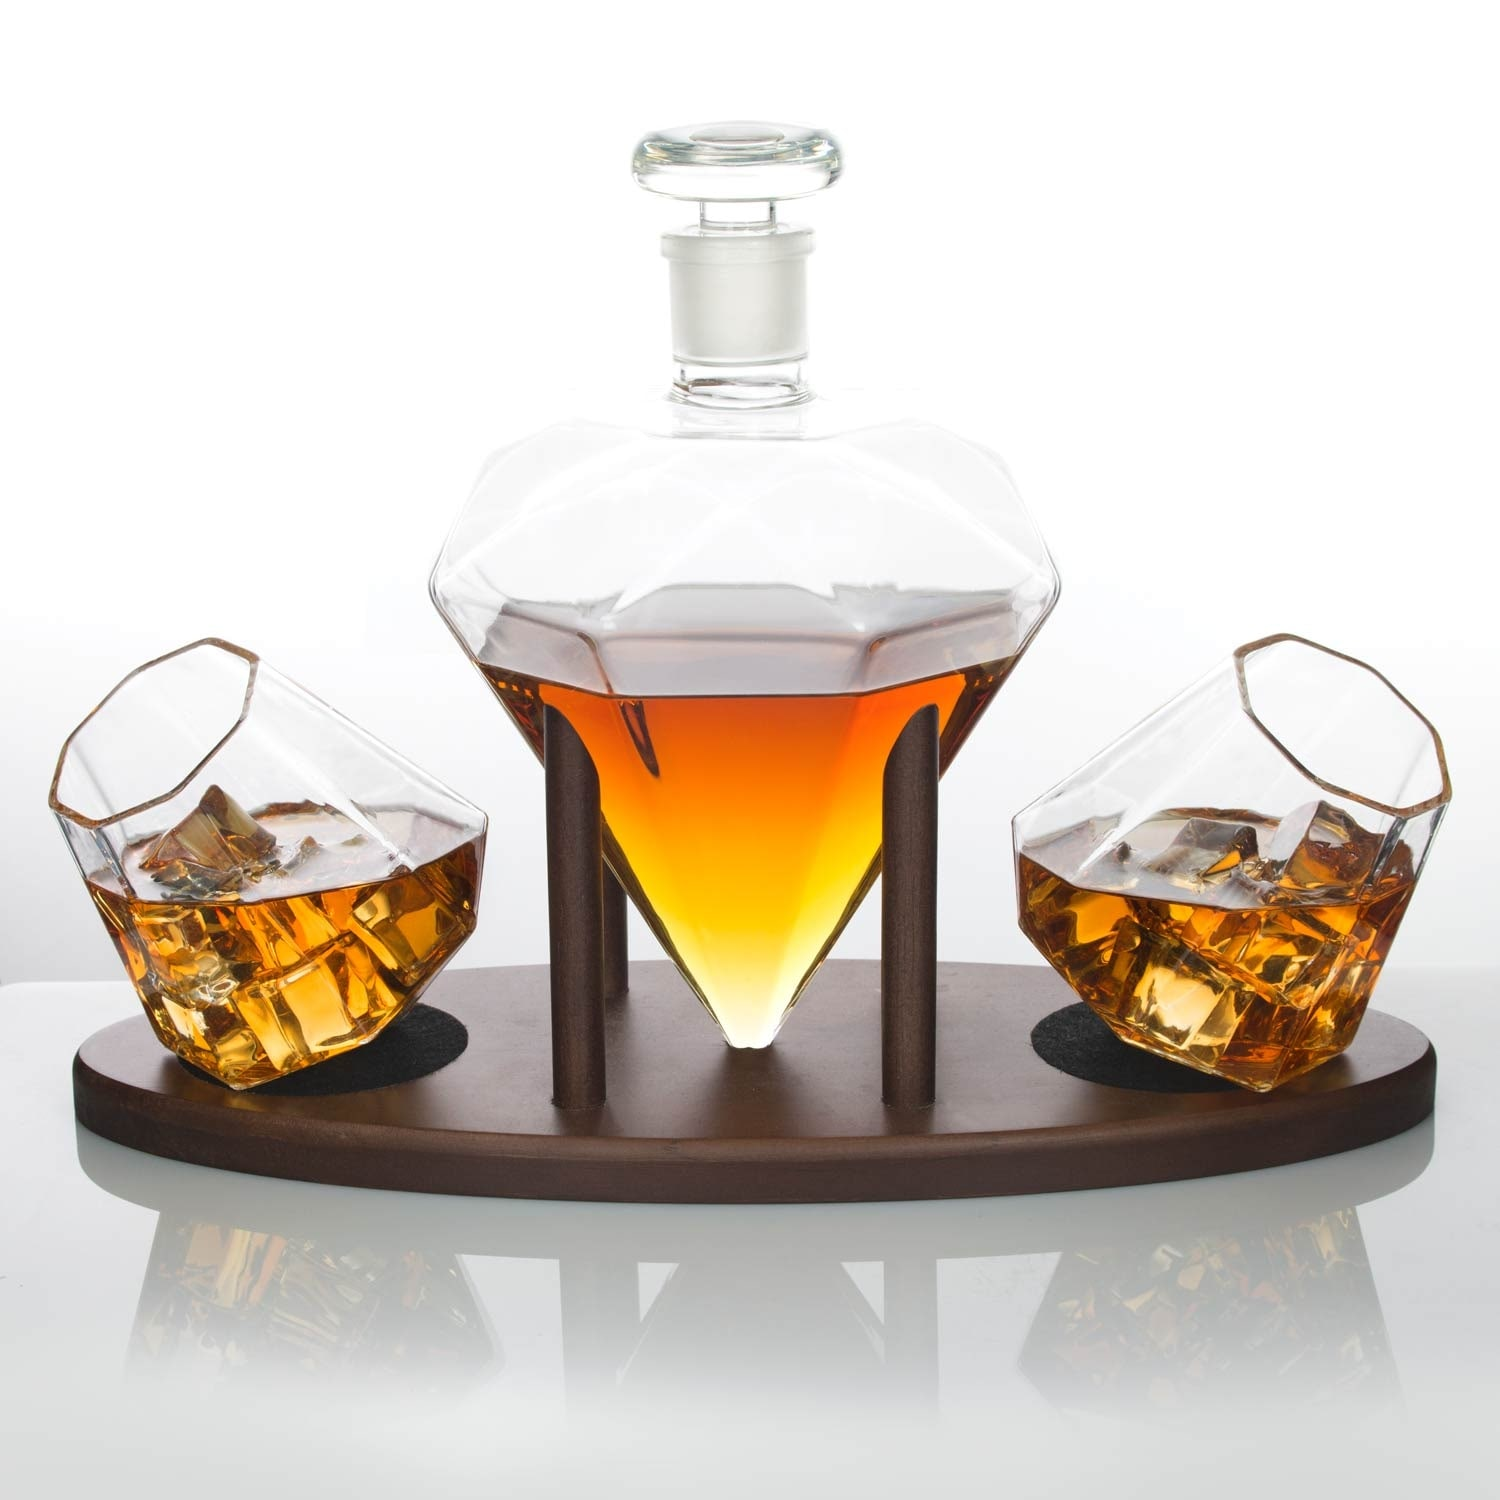 Whiskey Set Atterstone Diamond Decanter Set With Custom Mahogany Decanter Stand Whiskey Glasses And Whiskey Soap Stones